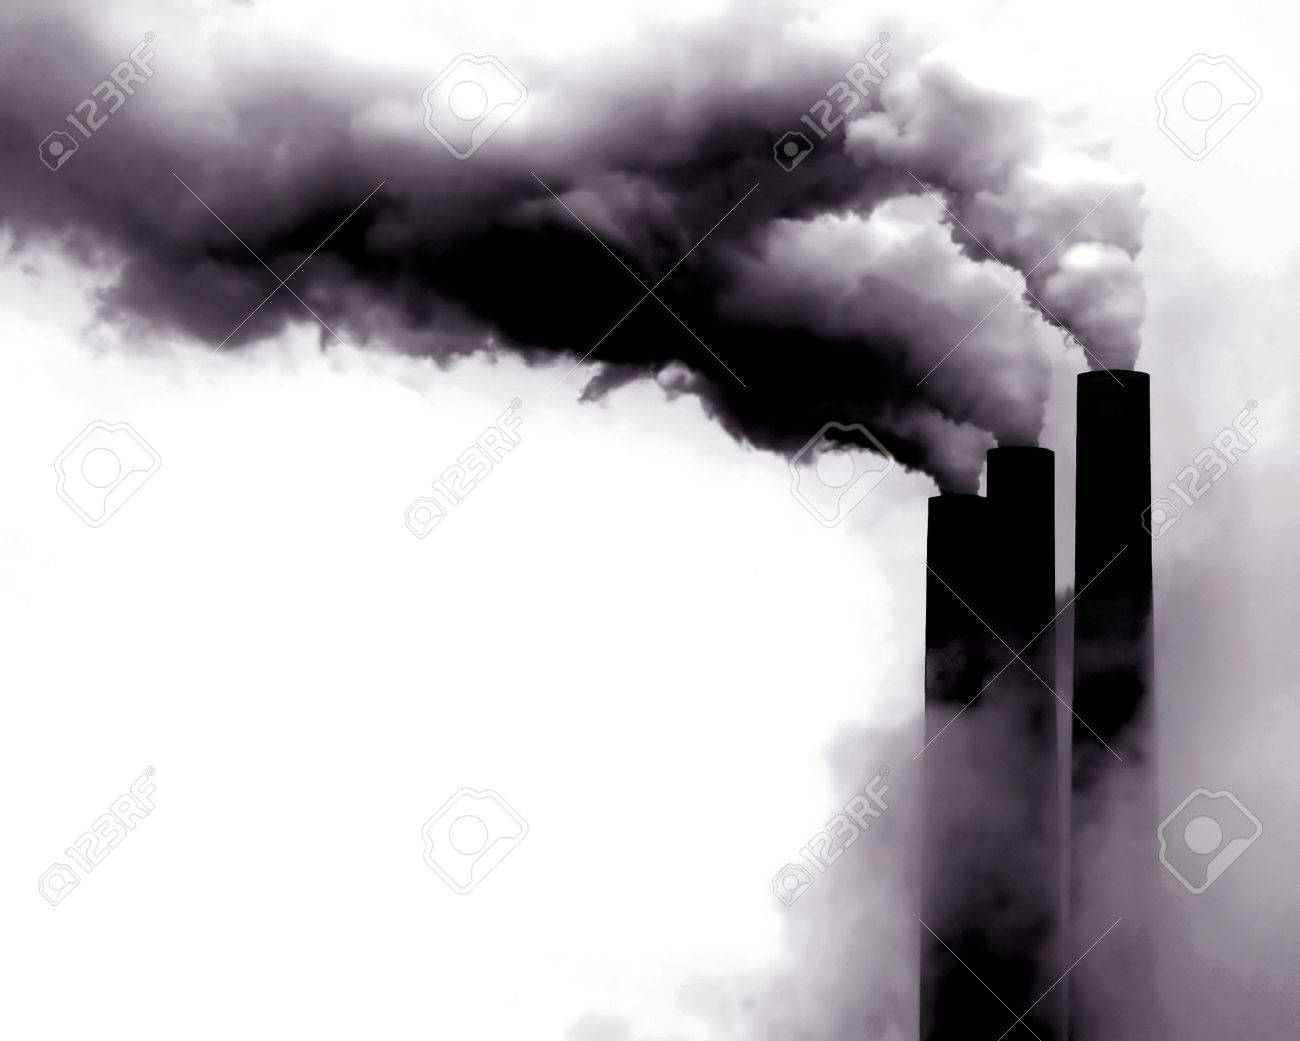 Scary Image of Power Plant emissions in America Stock Photo - 10999001